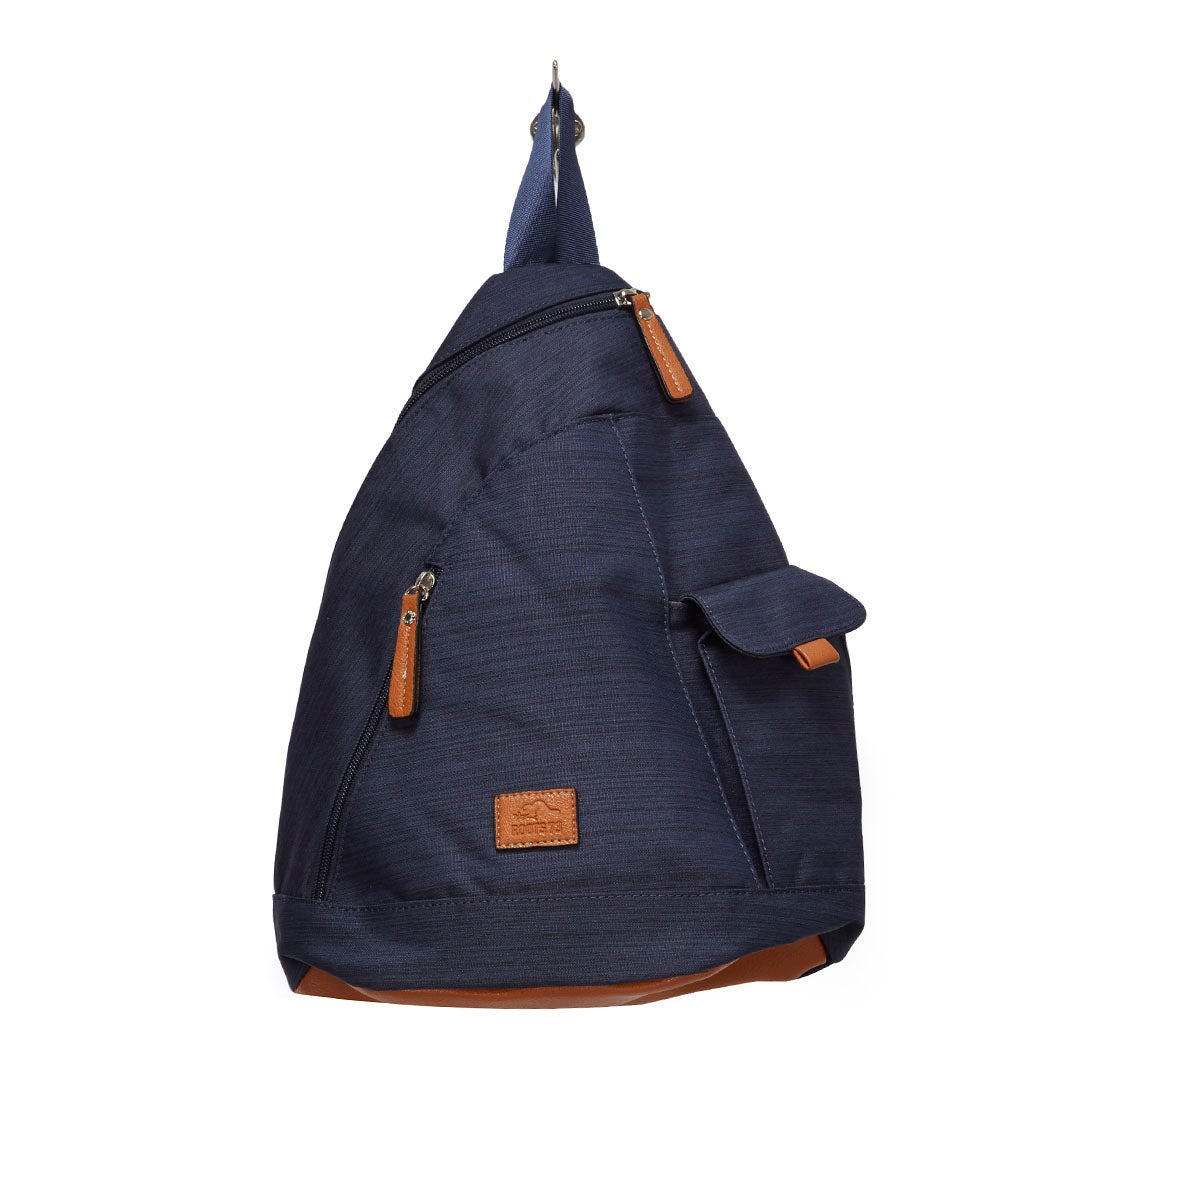 Roots navy textured sling backpack